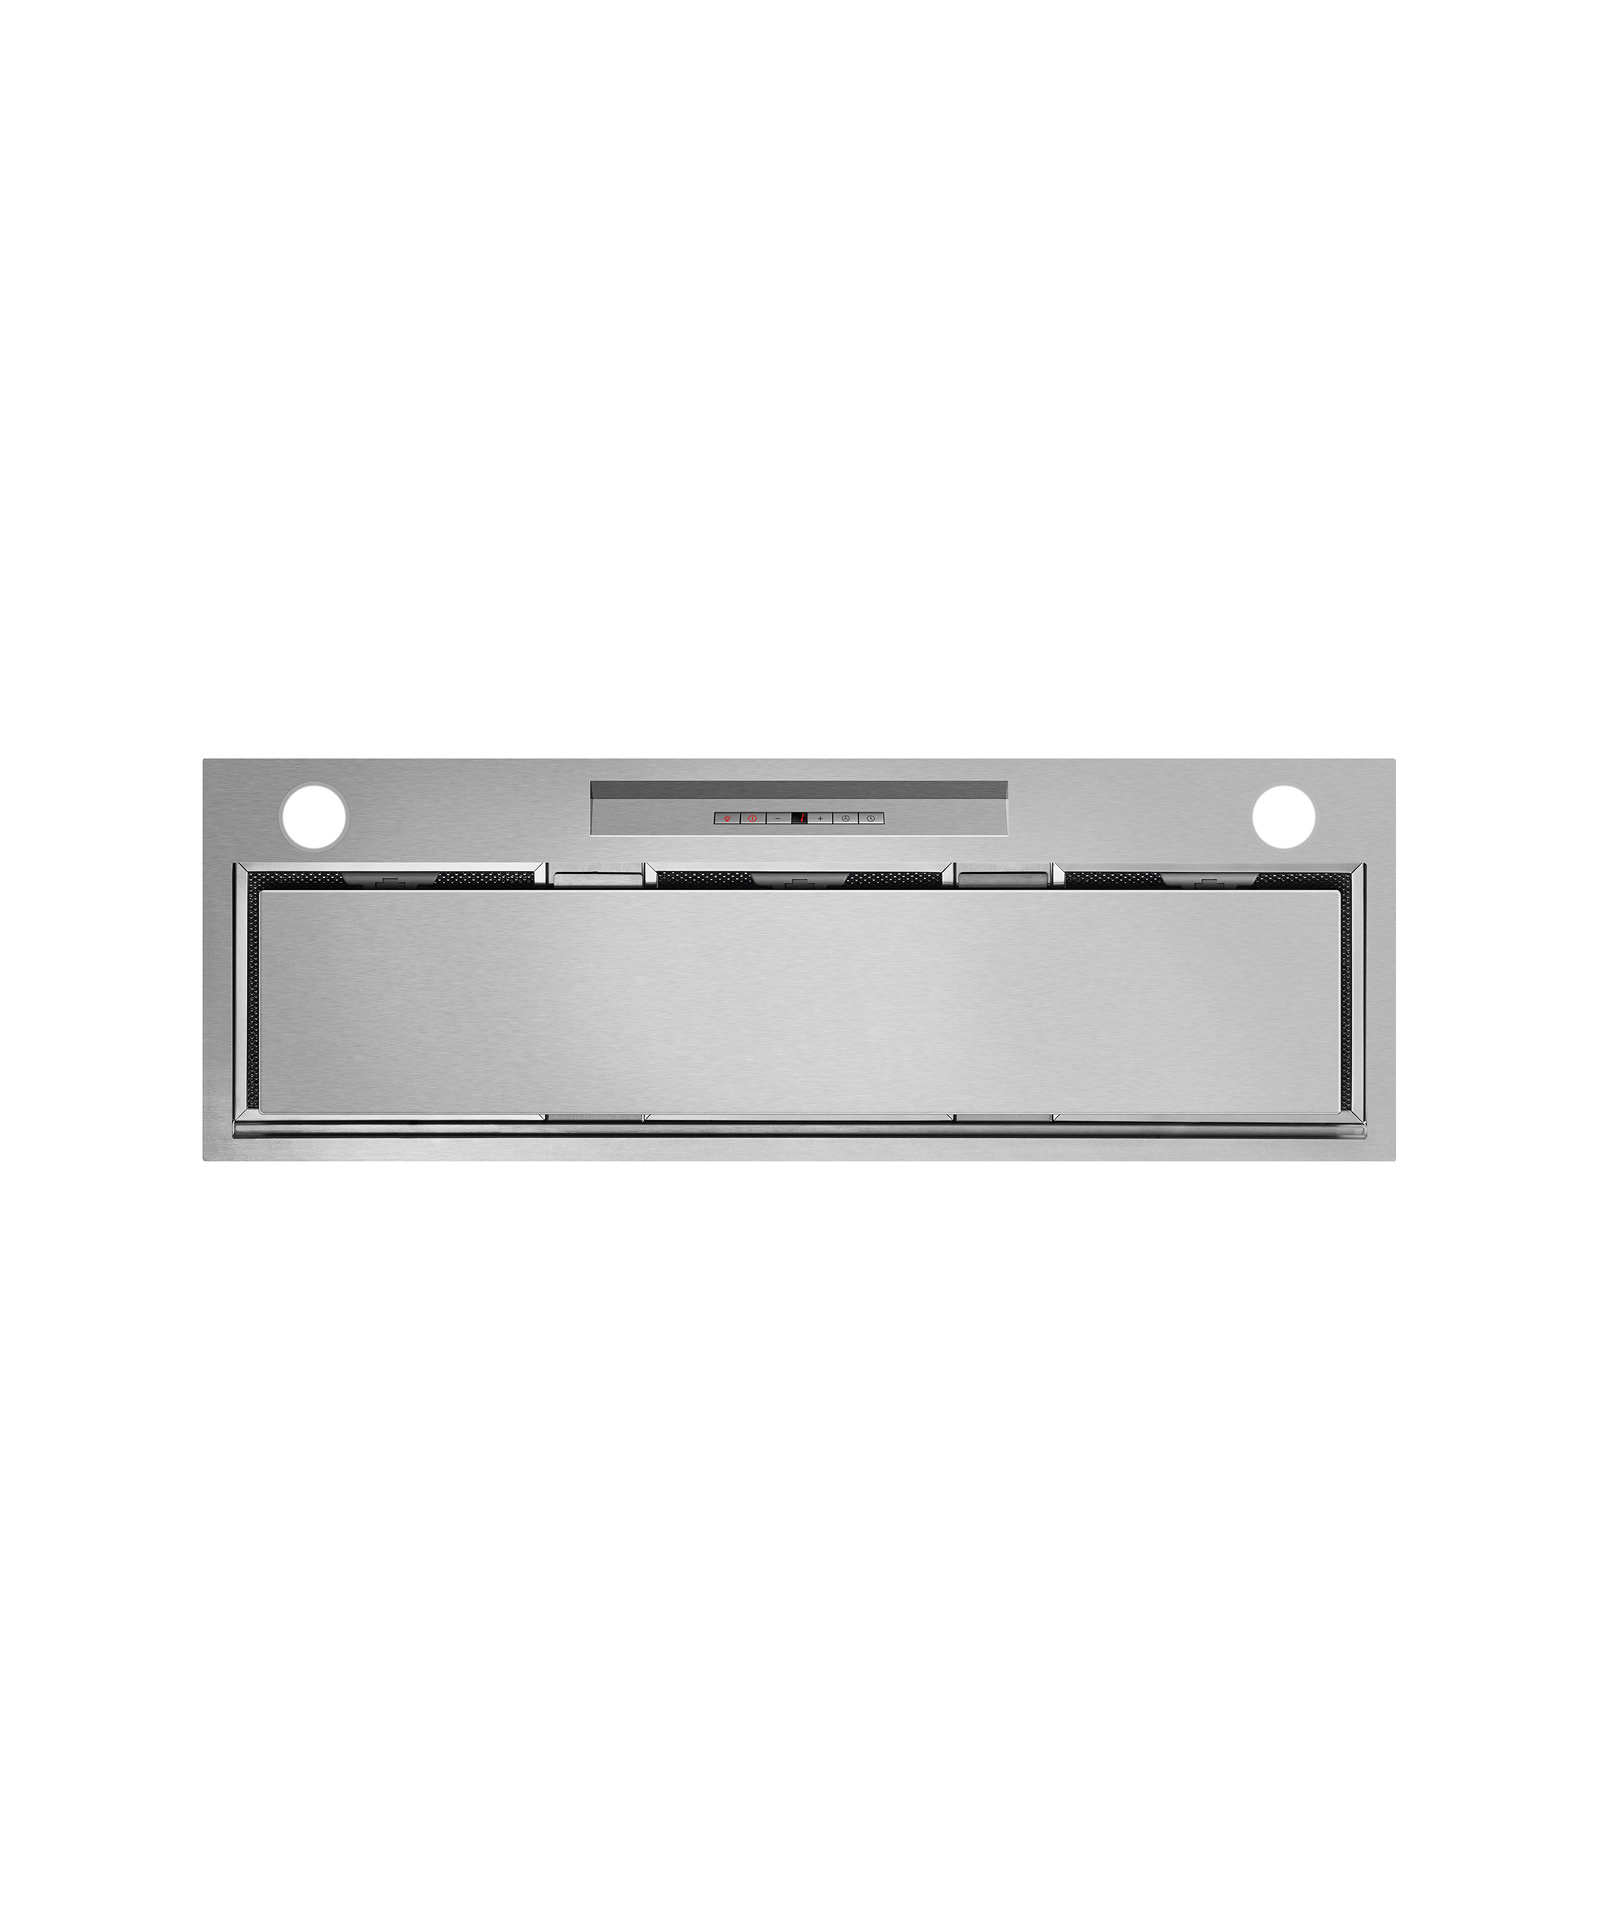 "Fisher and Paykel Ventilation Hood, 36"", Perimeter Insert"